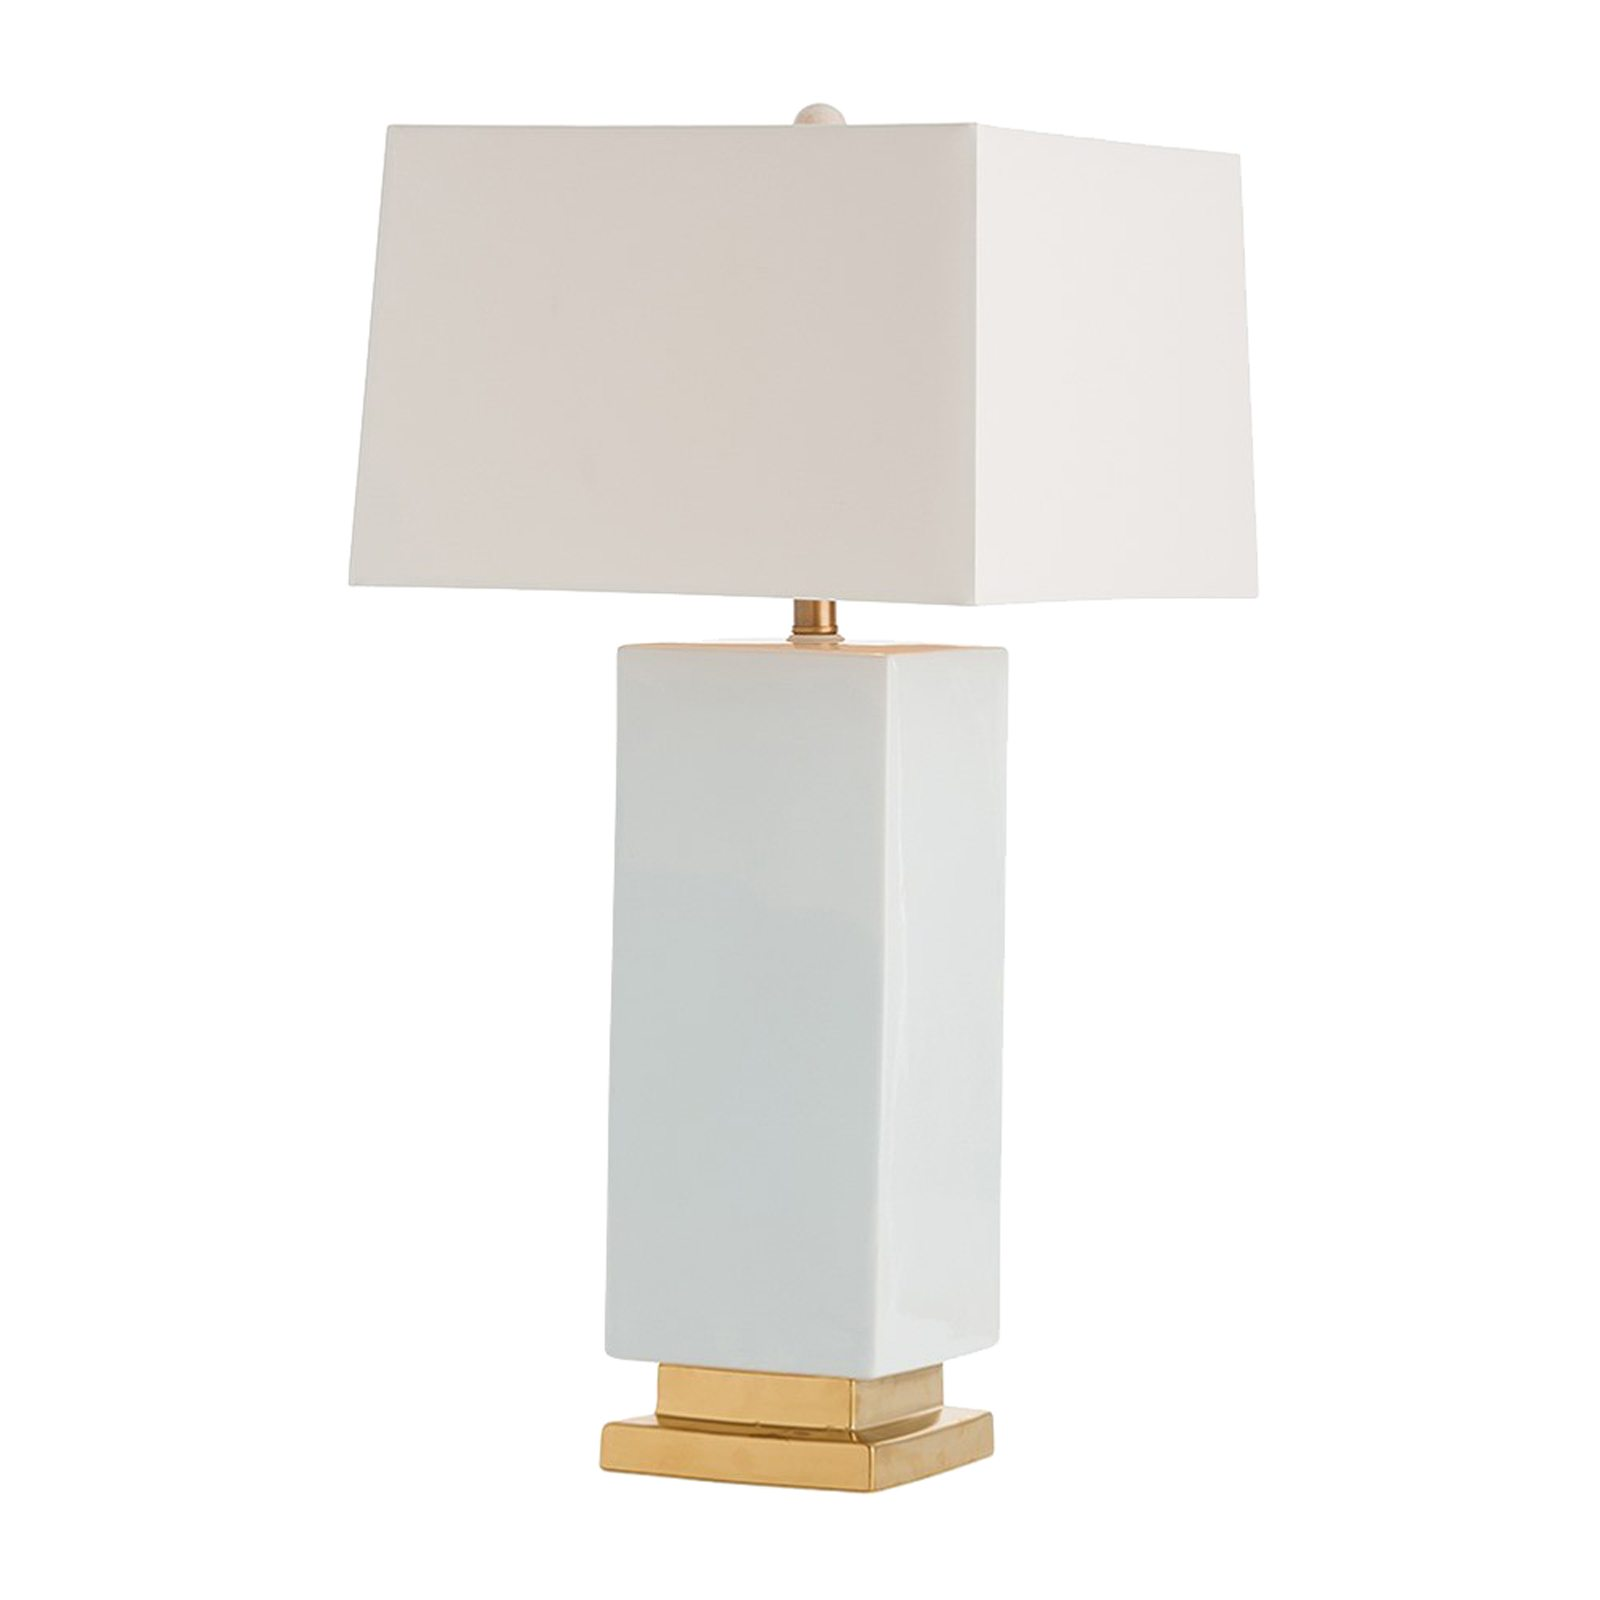 Luxury Table Lamps Luxury Riverside Apartment Table Lamps Modern Bedside